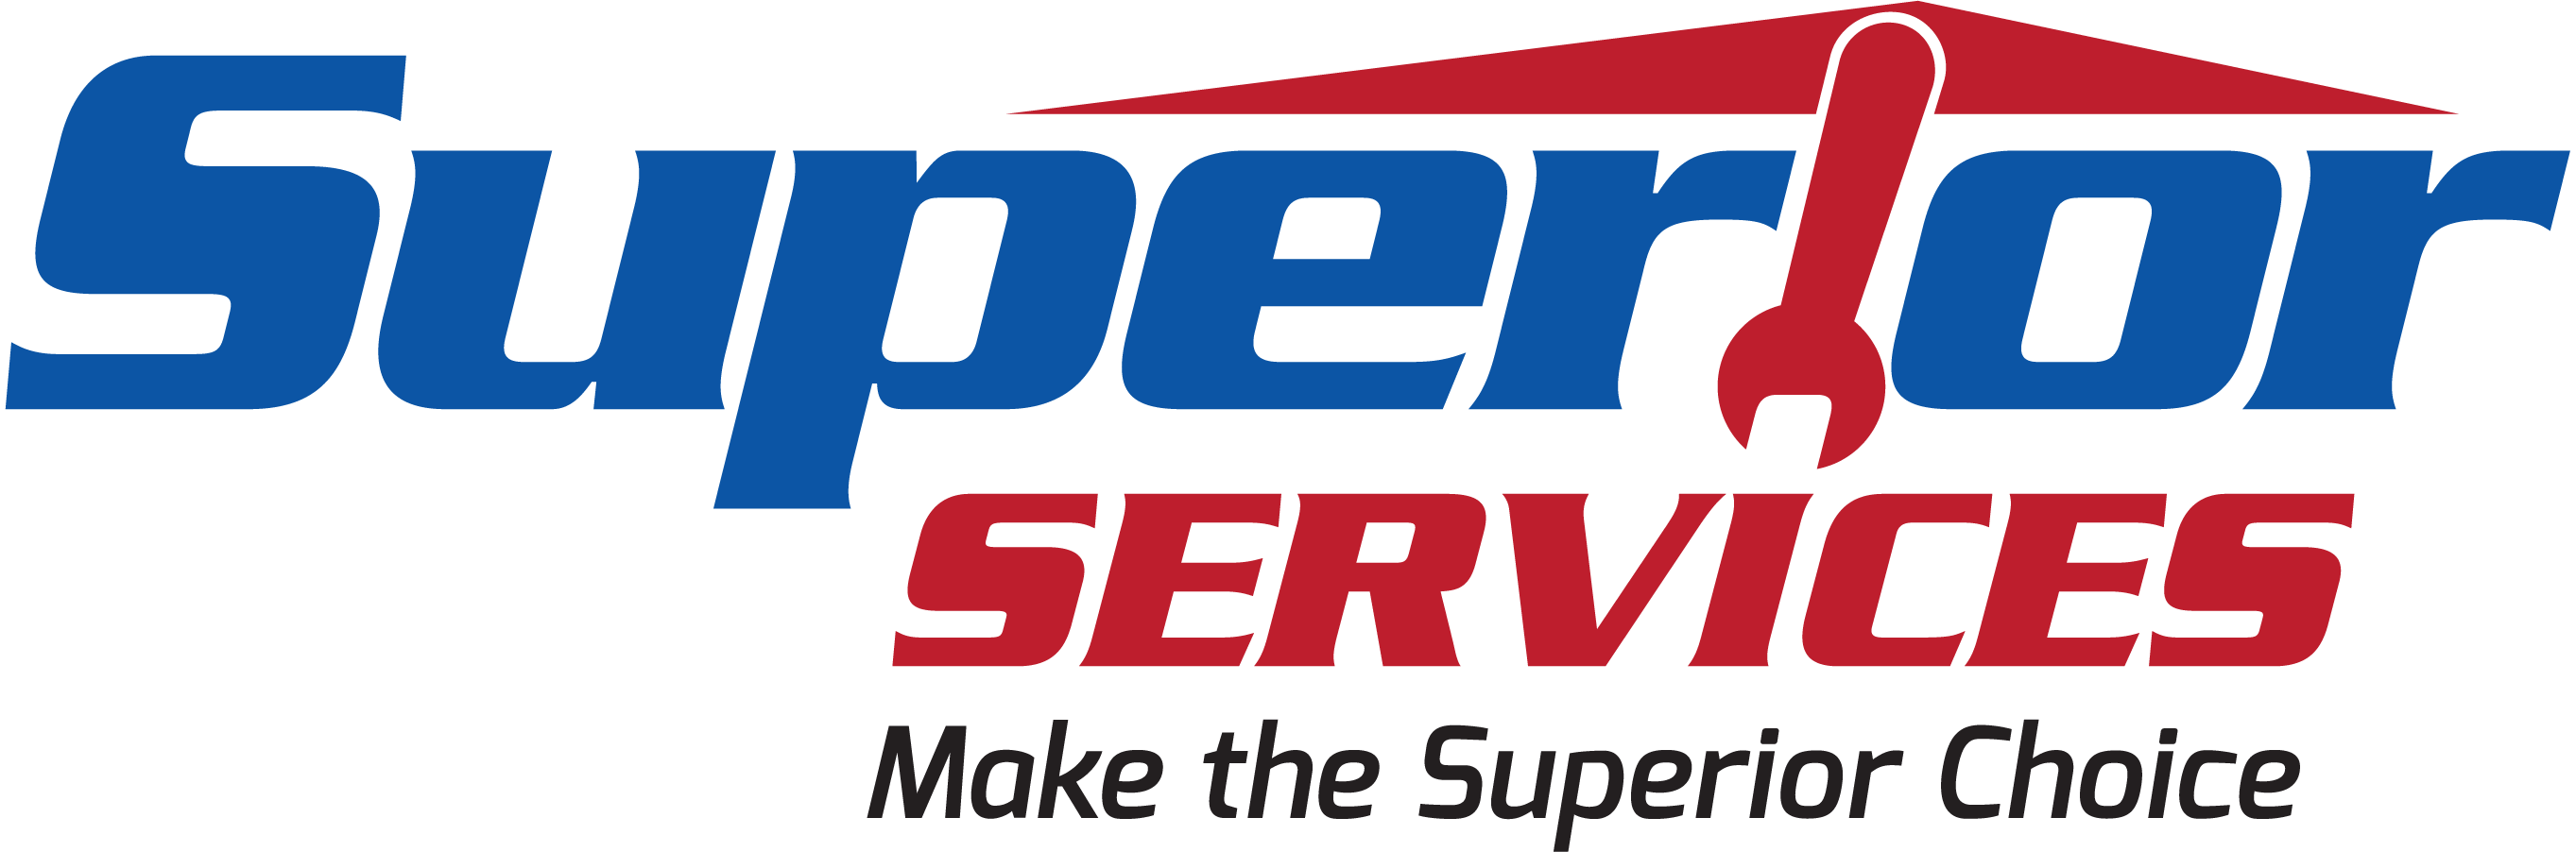 Superior Services Commercial HVAC Maintenance